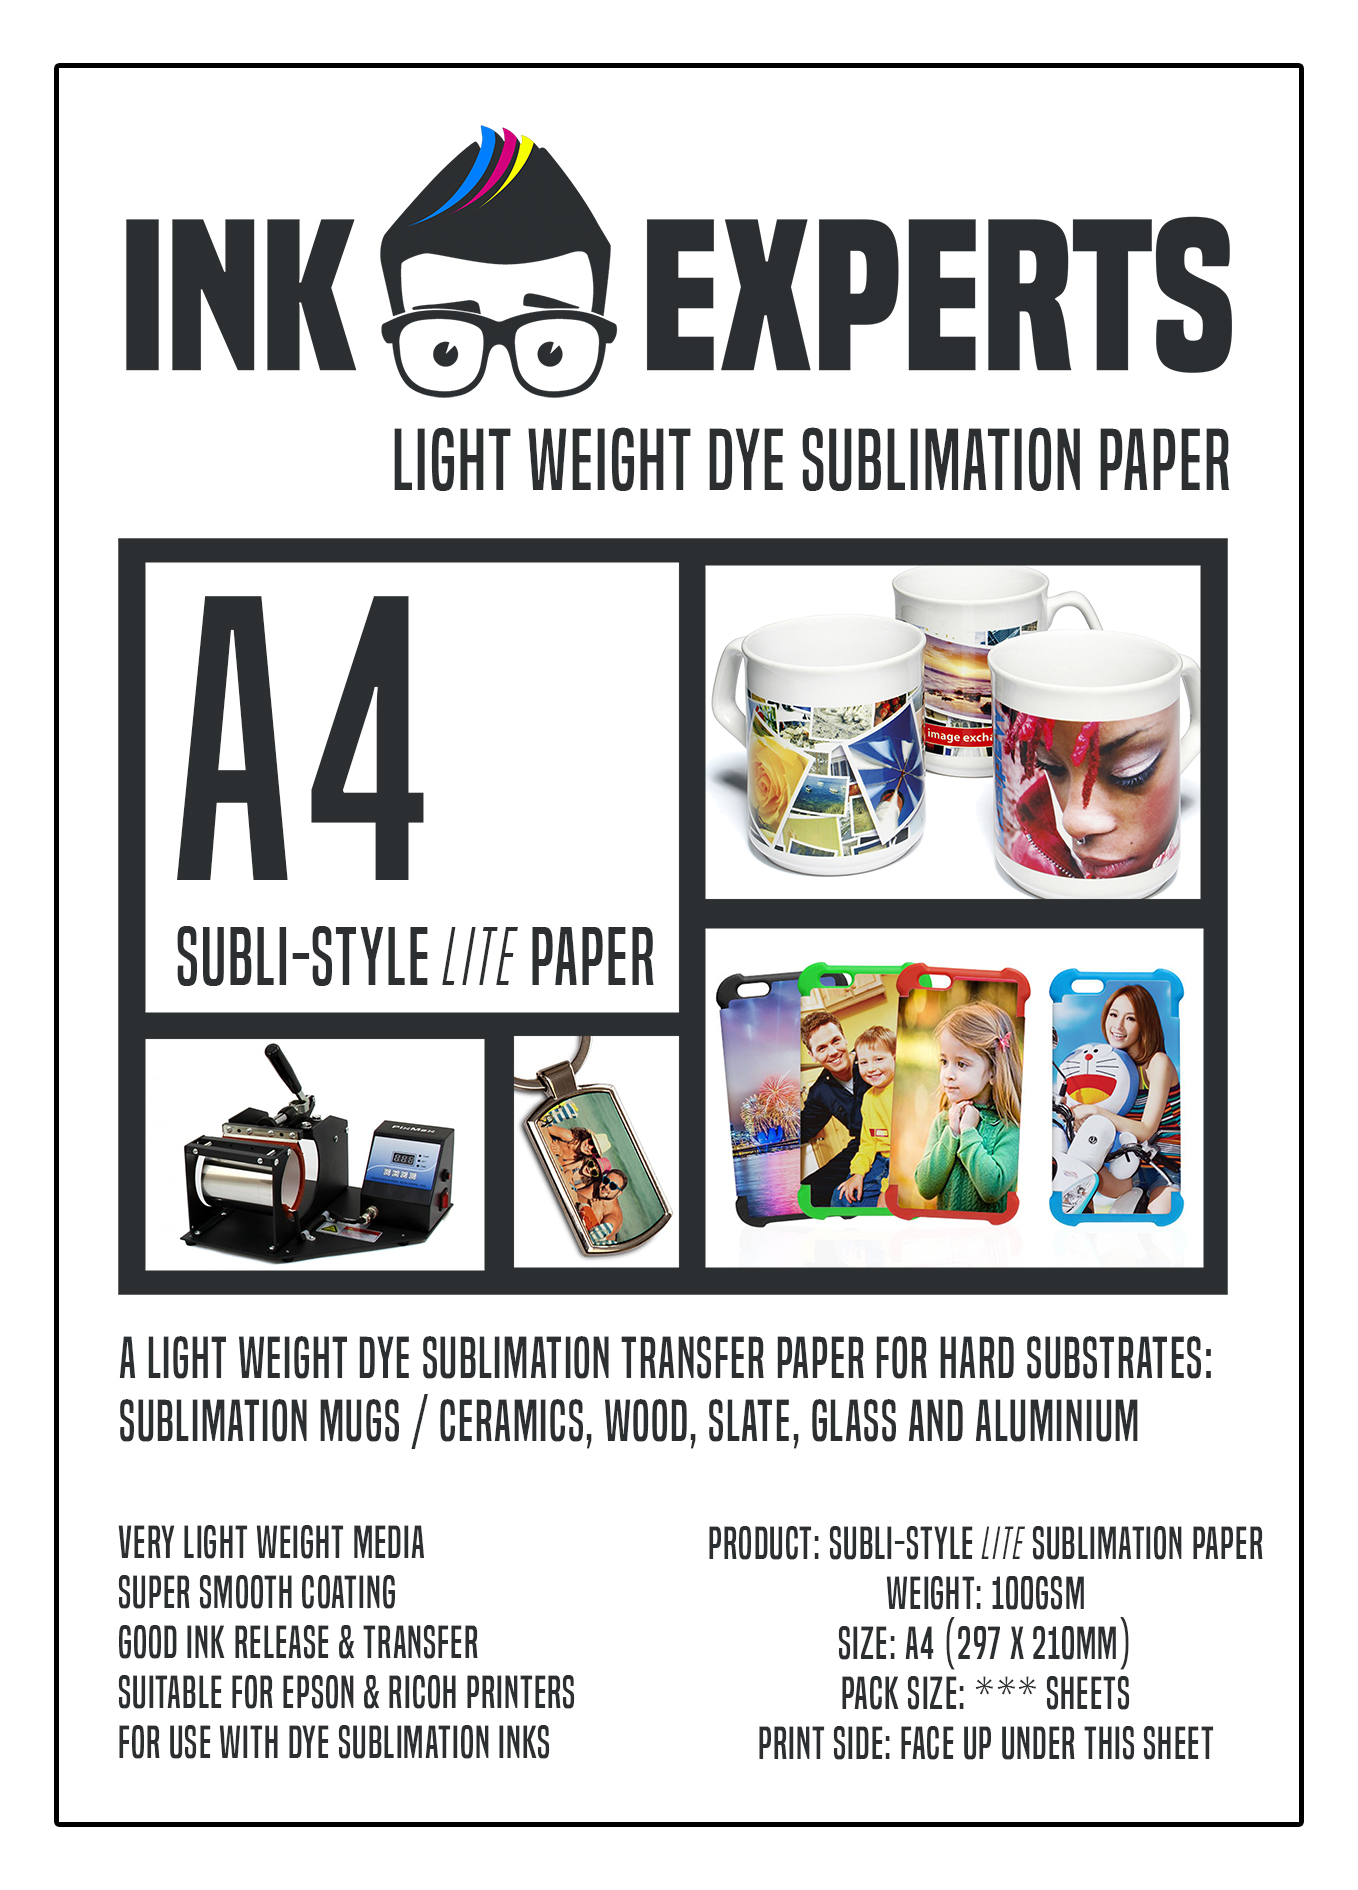 Ink Experts 100gsm A4 Subli-Style LITE Dye Sublimation Paper